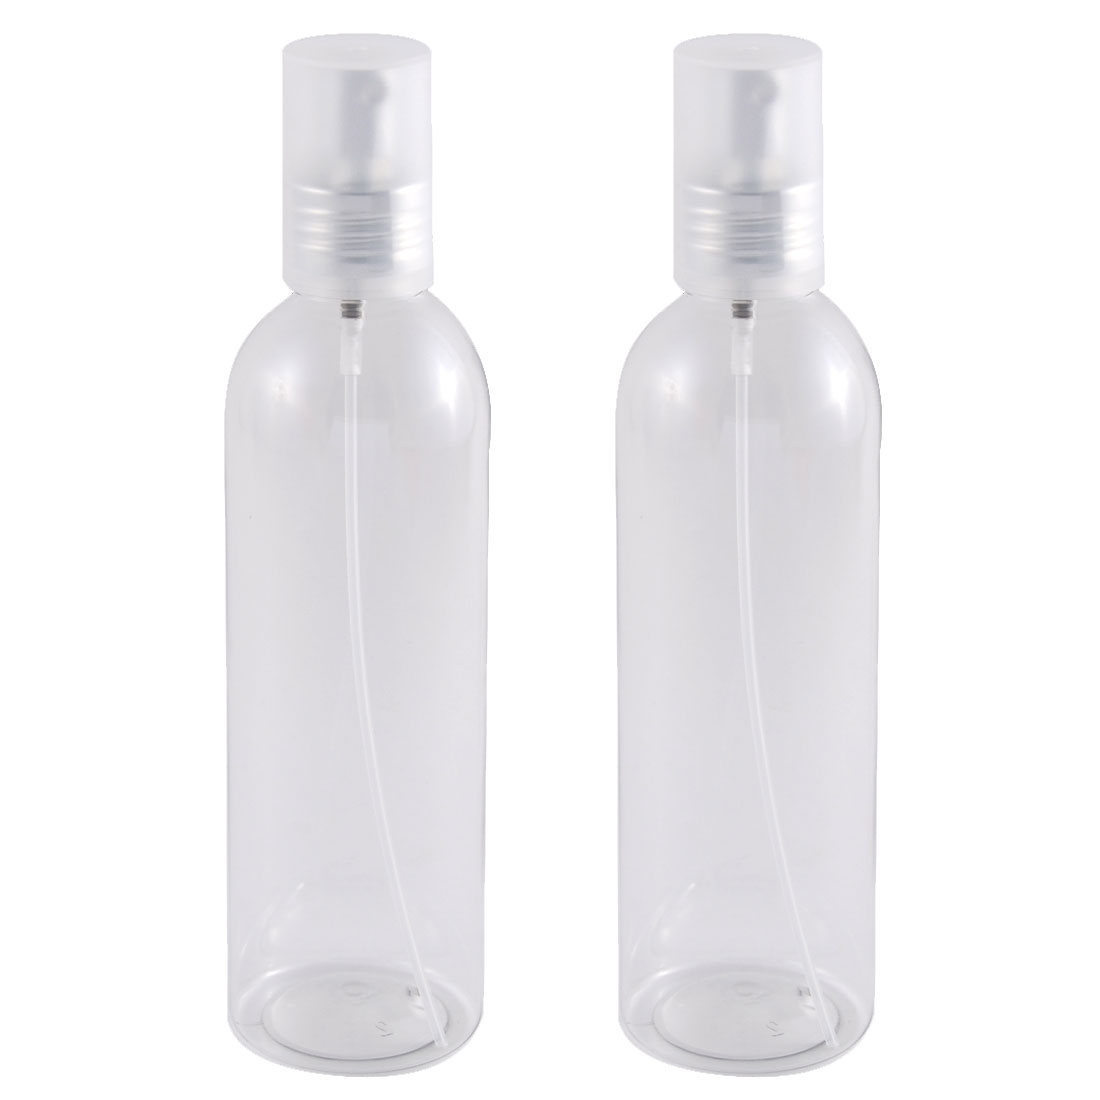 Traveling Plastic Shampoo Cosmetic Emulsion Press Pump Spray Bottle Clear 250ml 2pcs